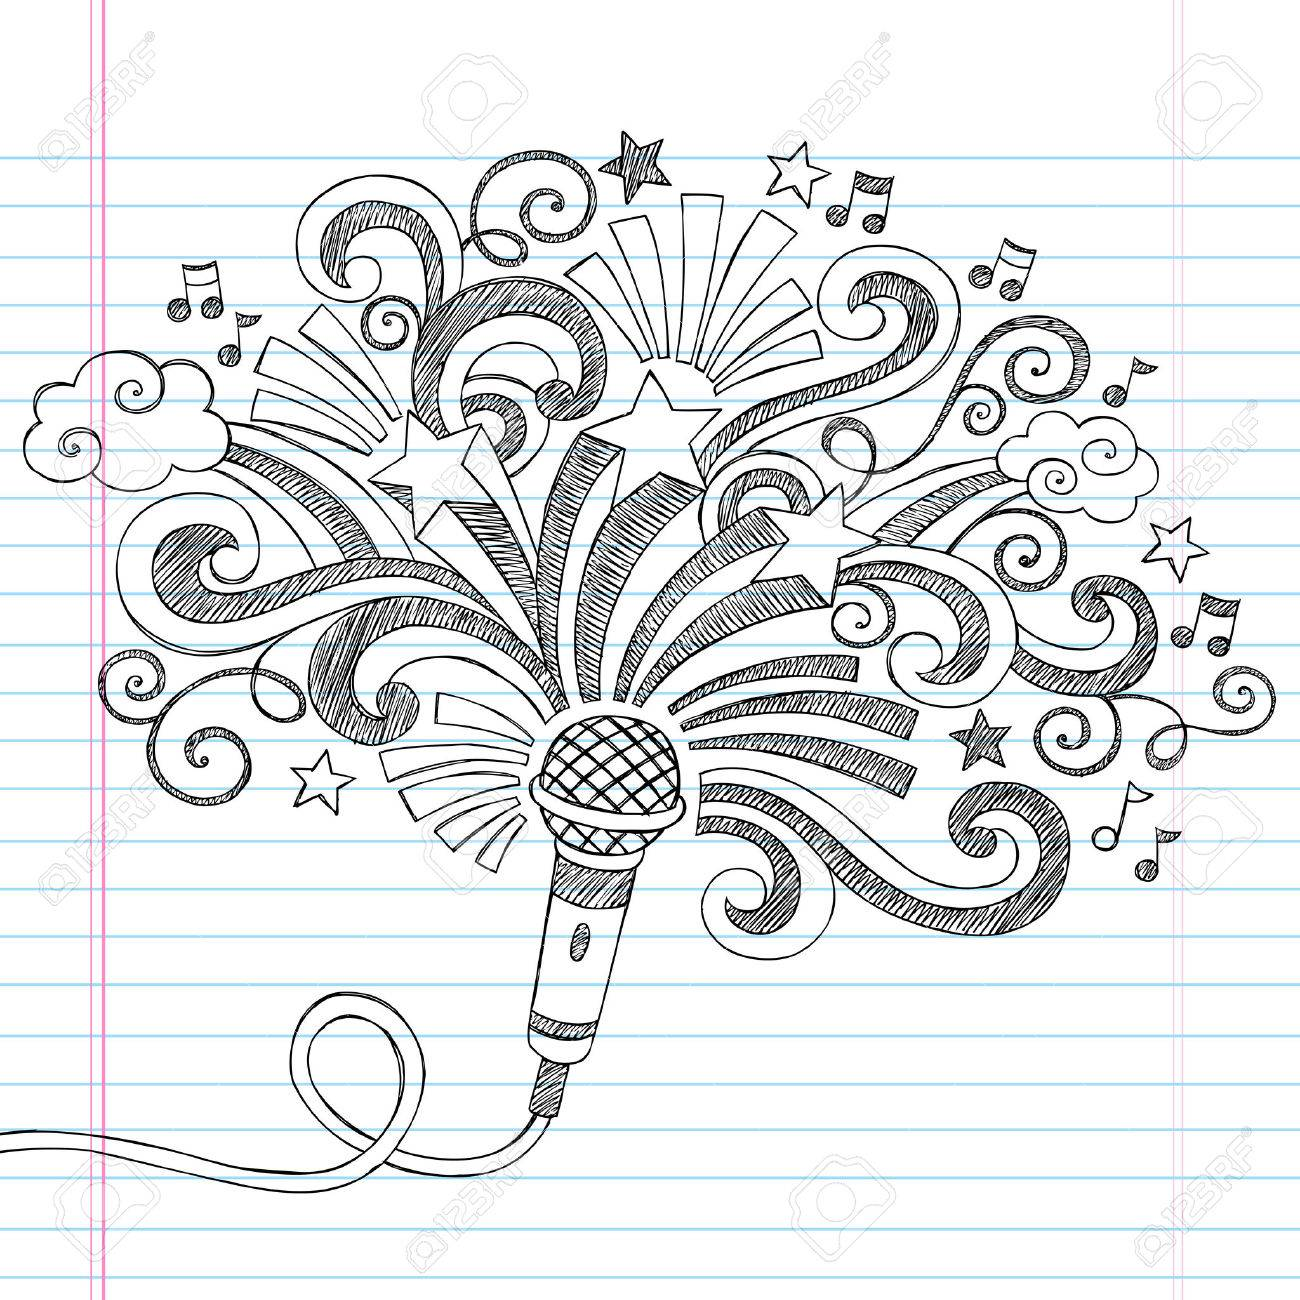 Microphone Music Back to School Sketchy Notebook Doodles Illustration Stock Vector - 22257326